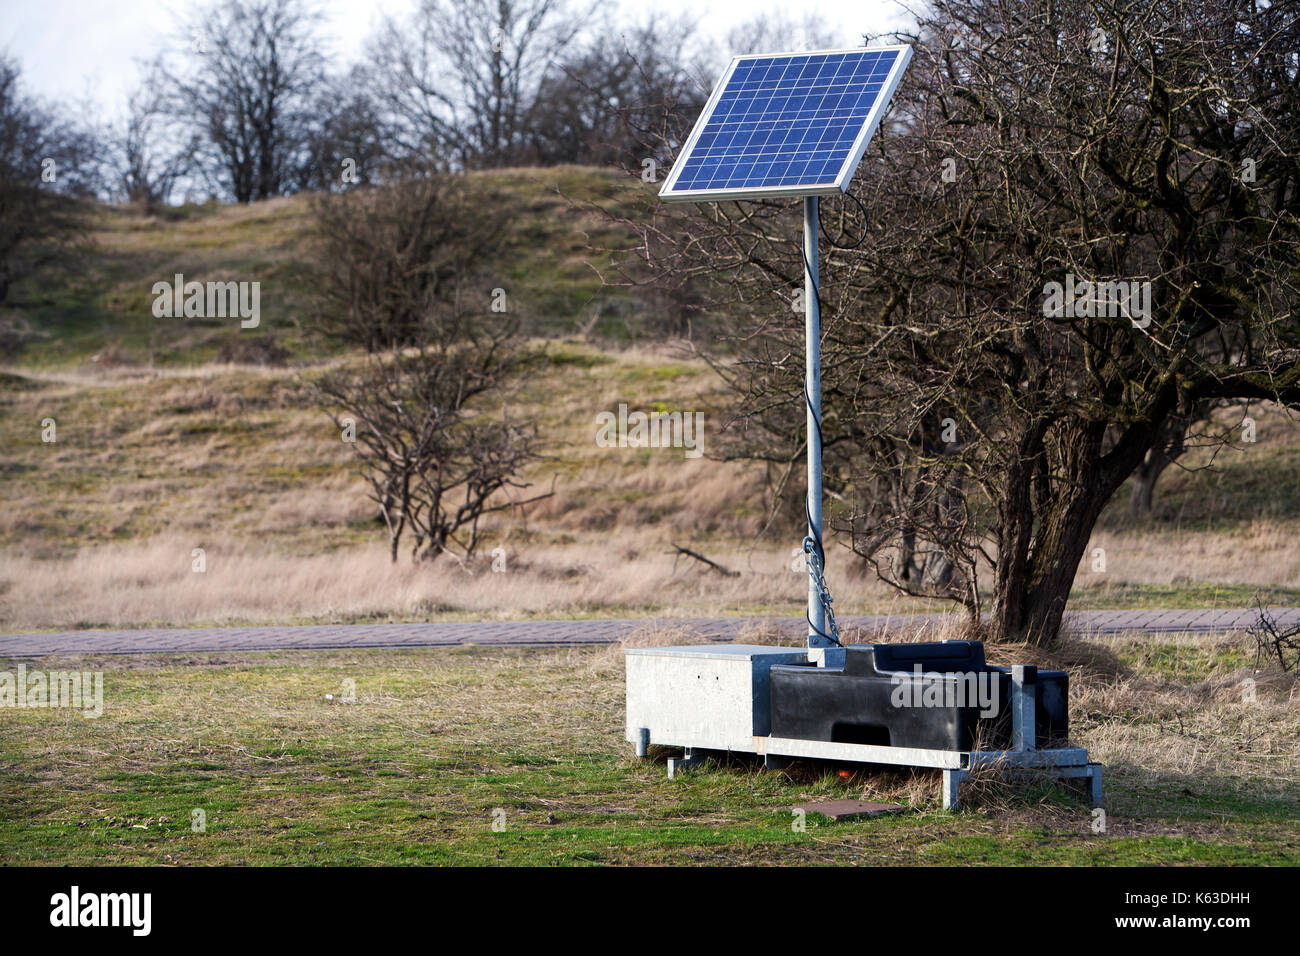 Solar energy unit used for scientific measurements in the Amsterdamse Waterleidingduinen, the Netherlands - Stock Image